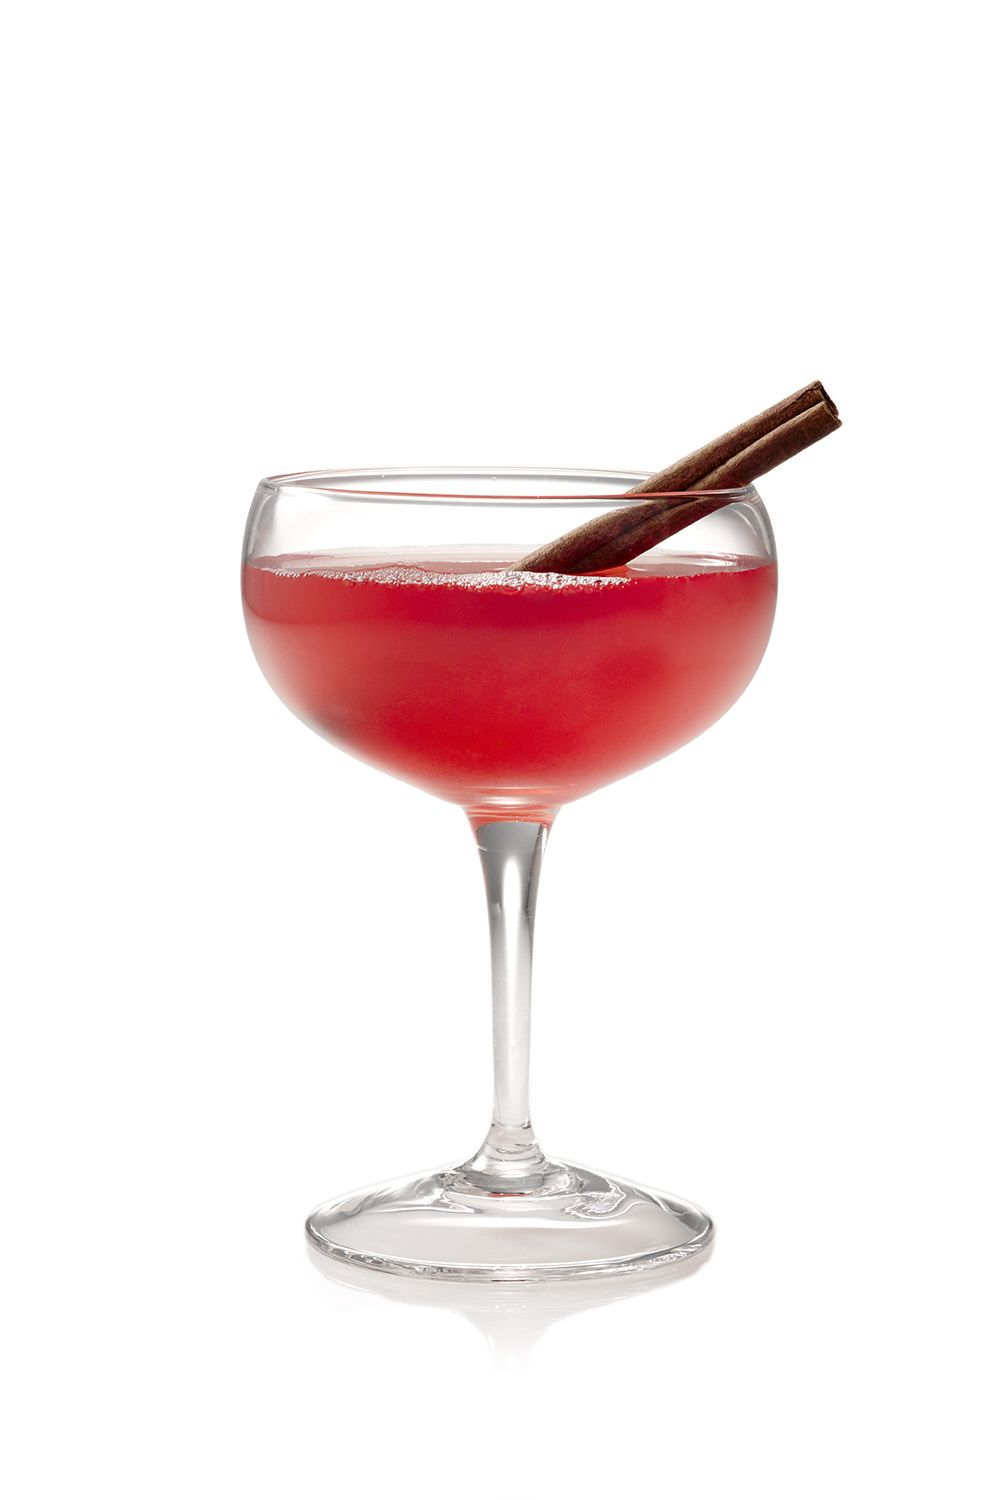 """<p><strong data-redactor-tag=""""strong"""" data-verified=""""redactor"""">Ingredients:</strong></p><p>2 oz. Cointreau</p><p>1 oz. Fresh Lime Juice</p><p>2 barspoons Cranberry Sauce</p><p><strong data-redactor-tag=""""strong"""" data-verified=""""redactor"""">Directions:</strong></p><p>Shake all ingredients with ice and fine-strain into a chilled cocktail glass. Garnish with an orange twist.</p><p><em data-redactor-tag=""""em"""" data-verified=""""redactor"""">Courtesy of Cointreau</em></p>"""